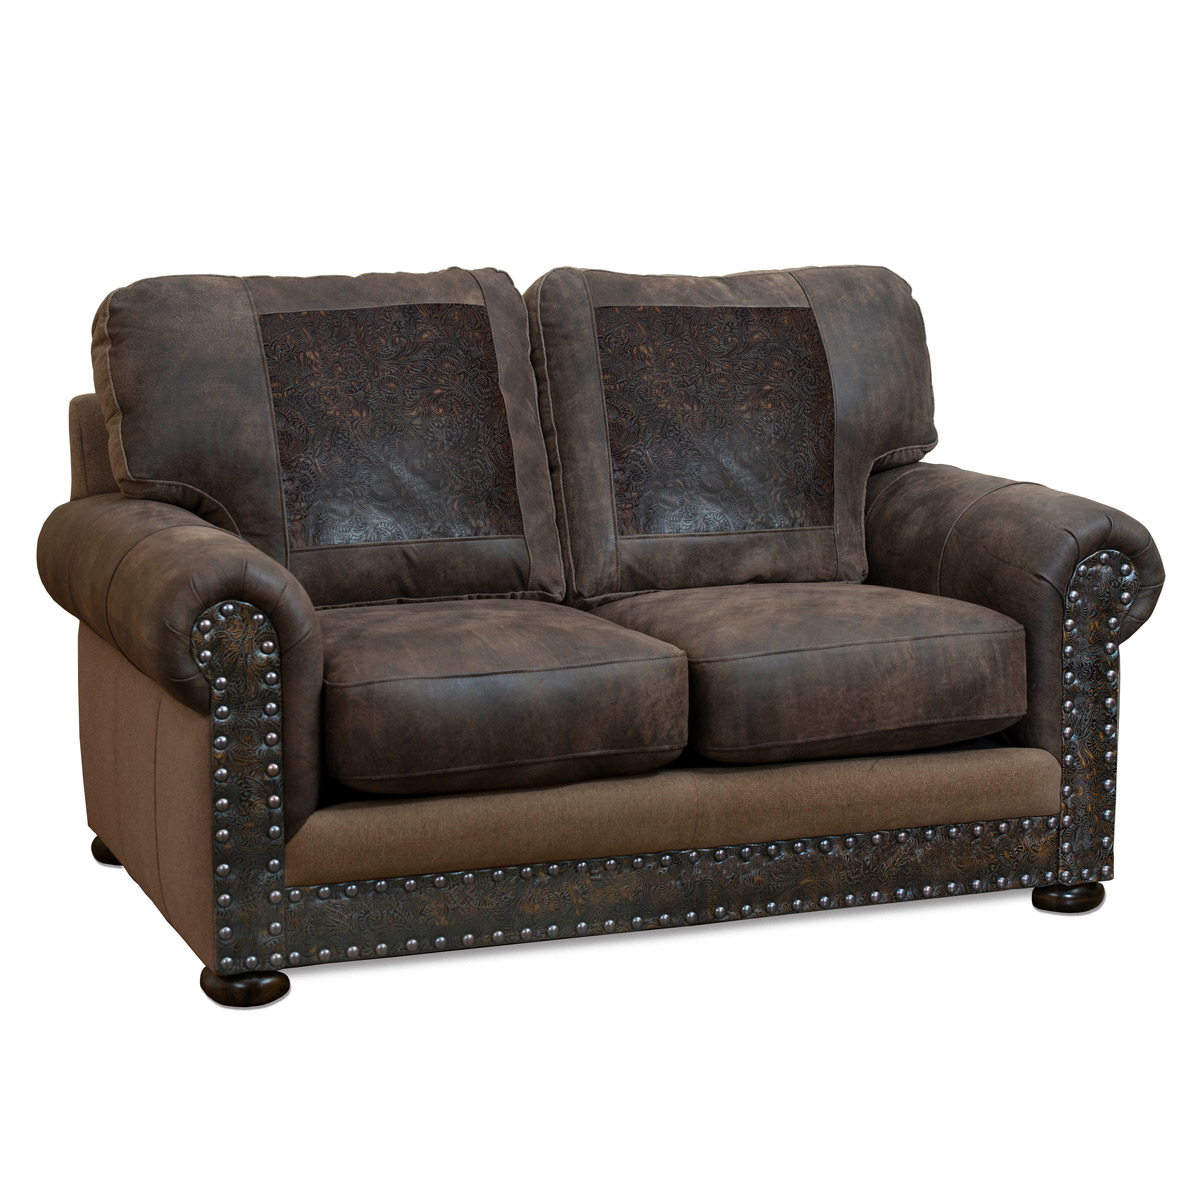 Miraculous Rancher Stallone Timber Loveseat Camellatalisay Diy Chair Ideas Camellatalisaycom